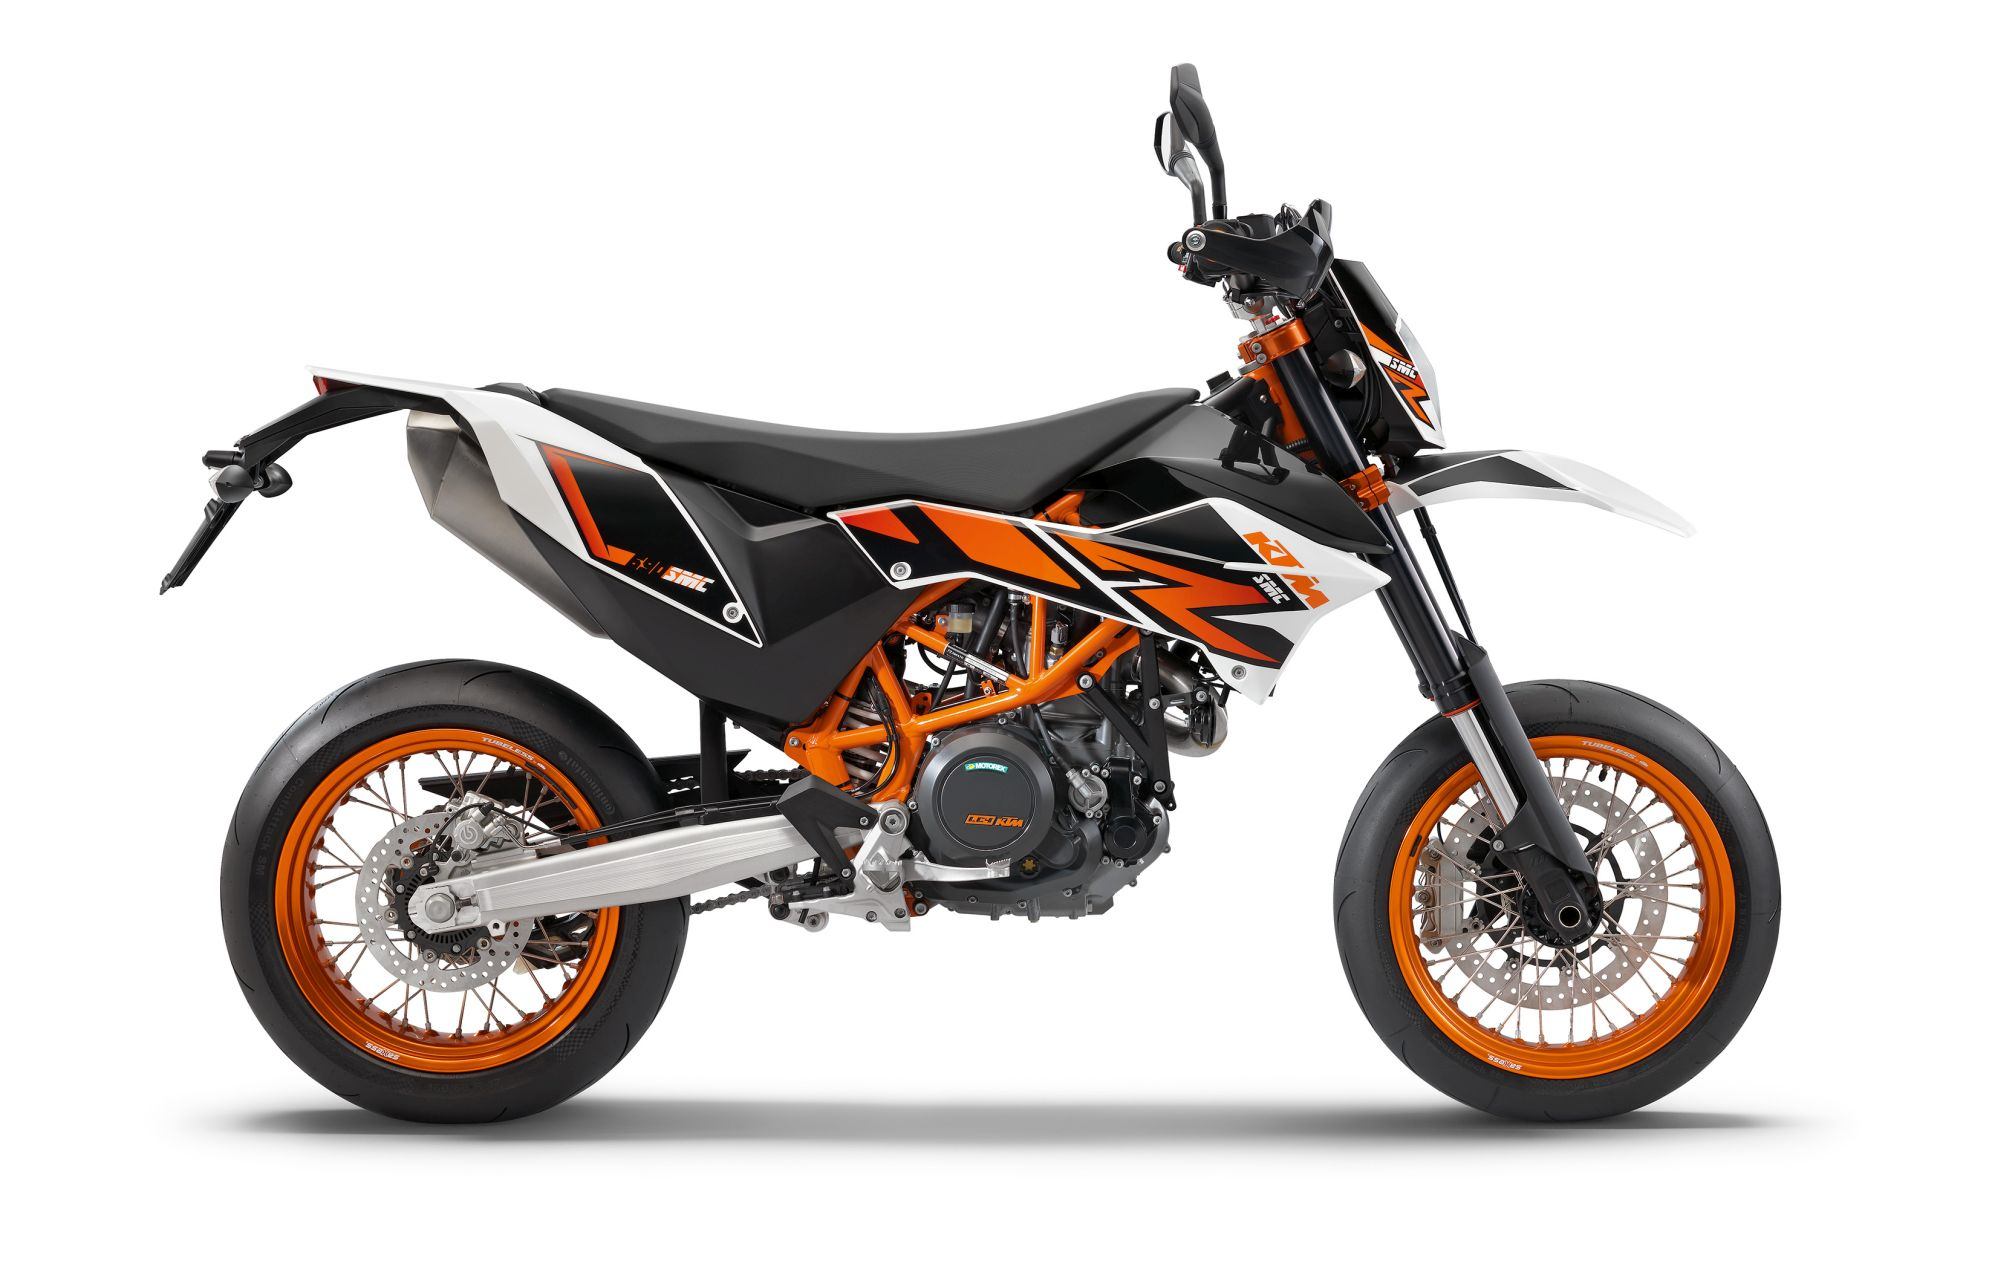 ktm 690 smc r bilder und technische daten. Black Bedroom Furniture Sets. Home Design Ideas